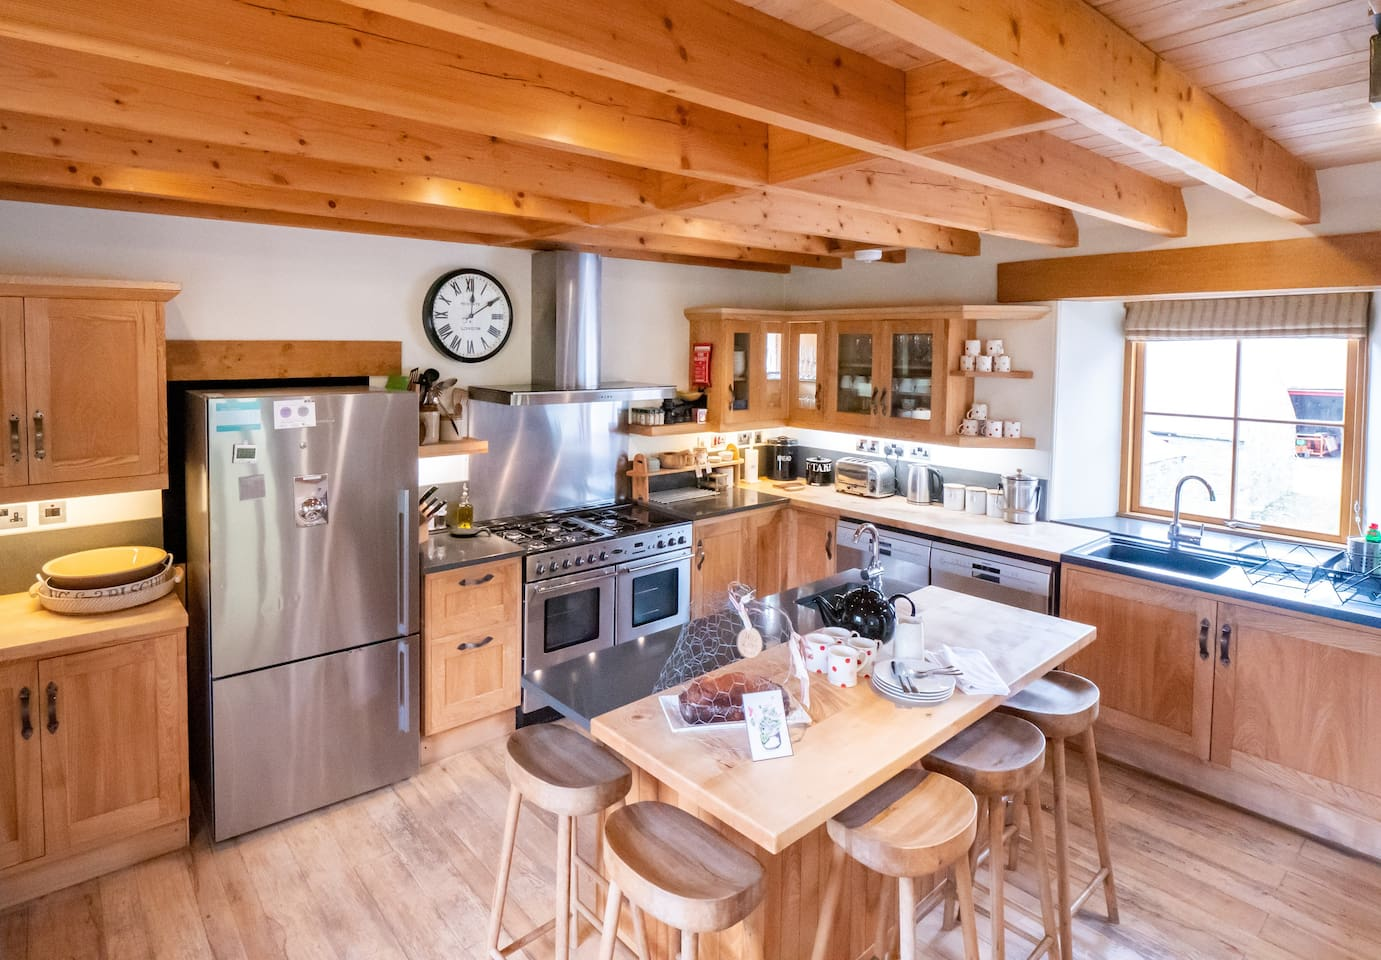 Enjoy cooking your favourite dish in the spacious kitchen while chatting with family and friends.